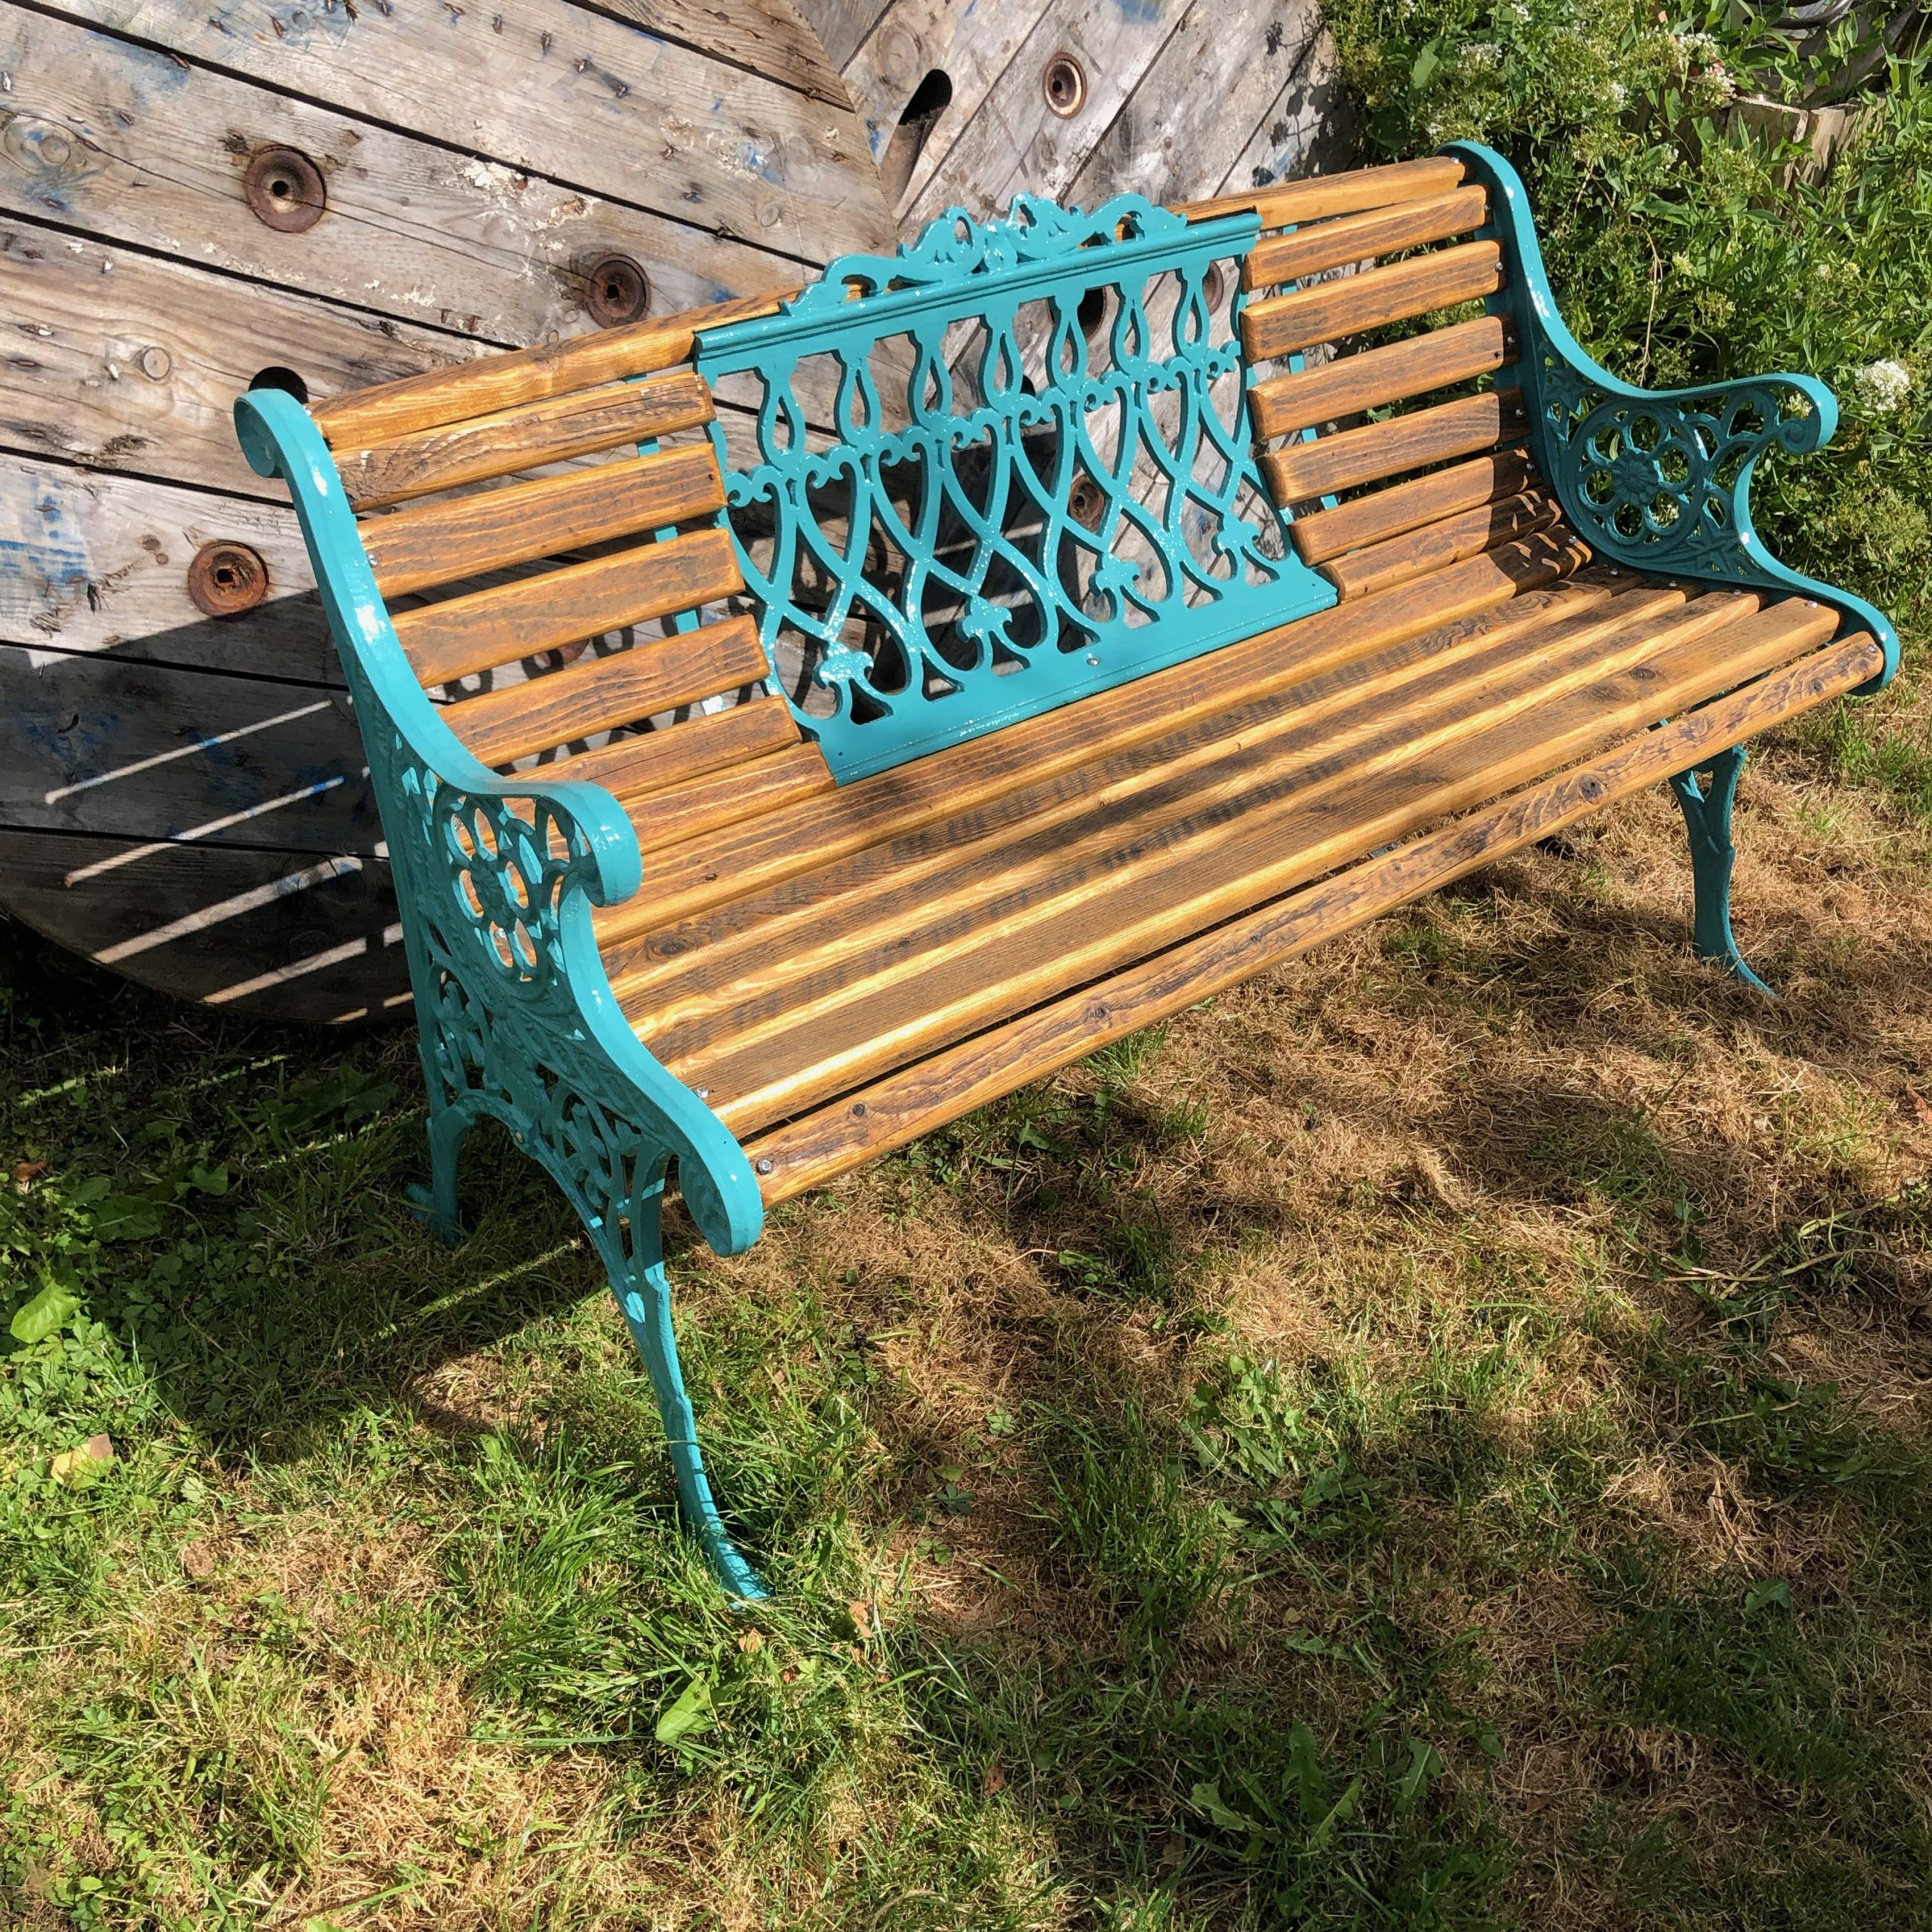 Reclaimed barn wood and West Pier salvage bench